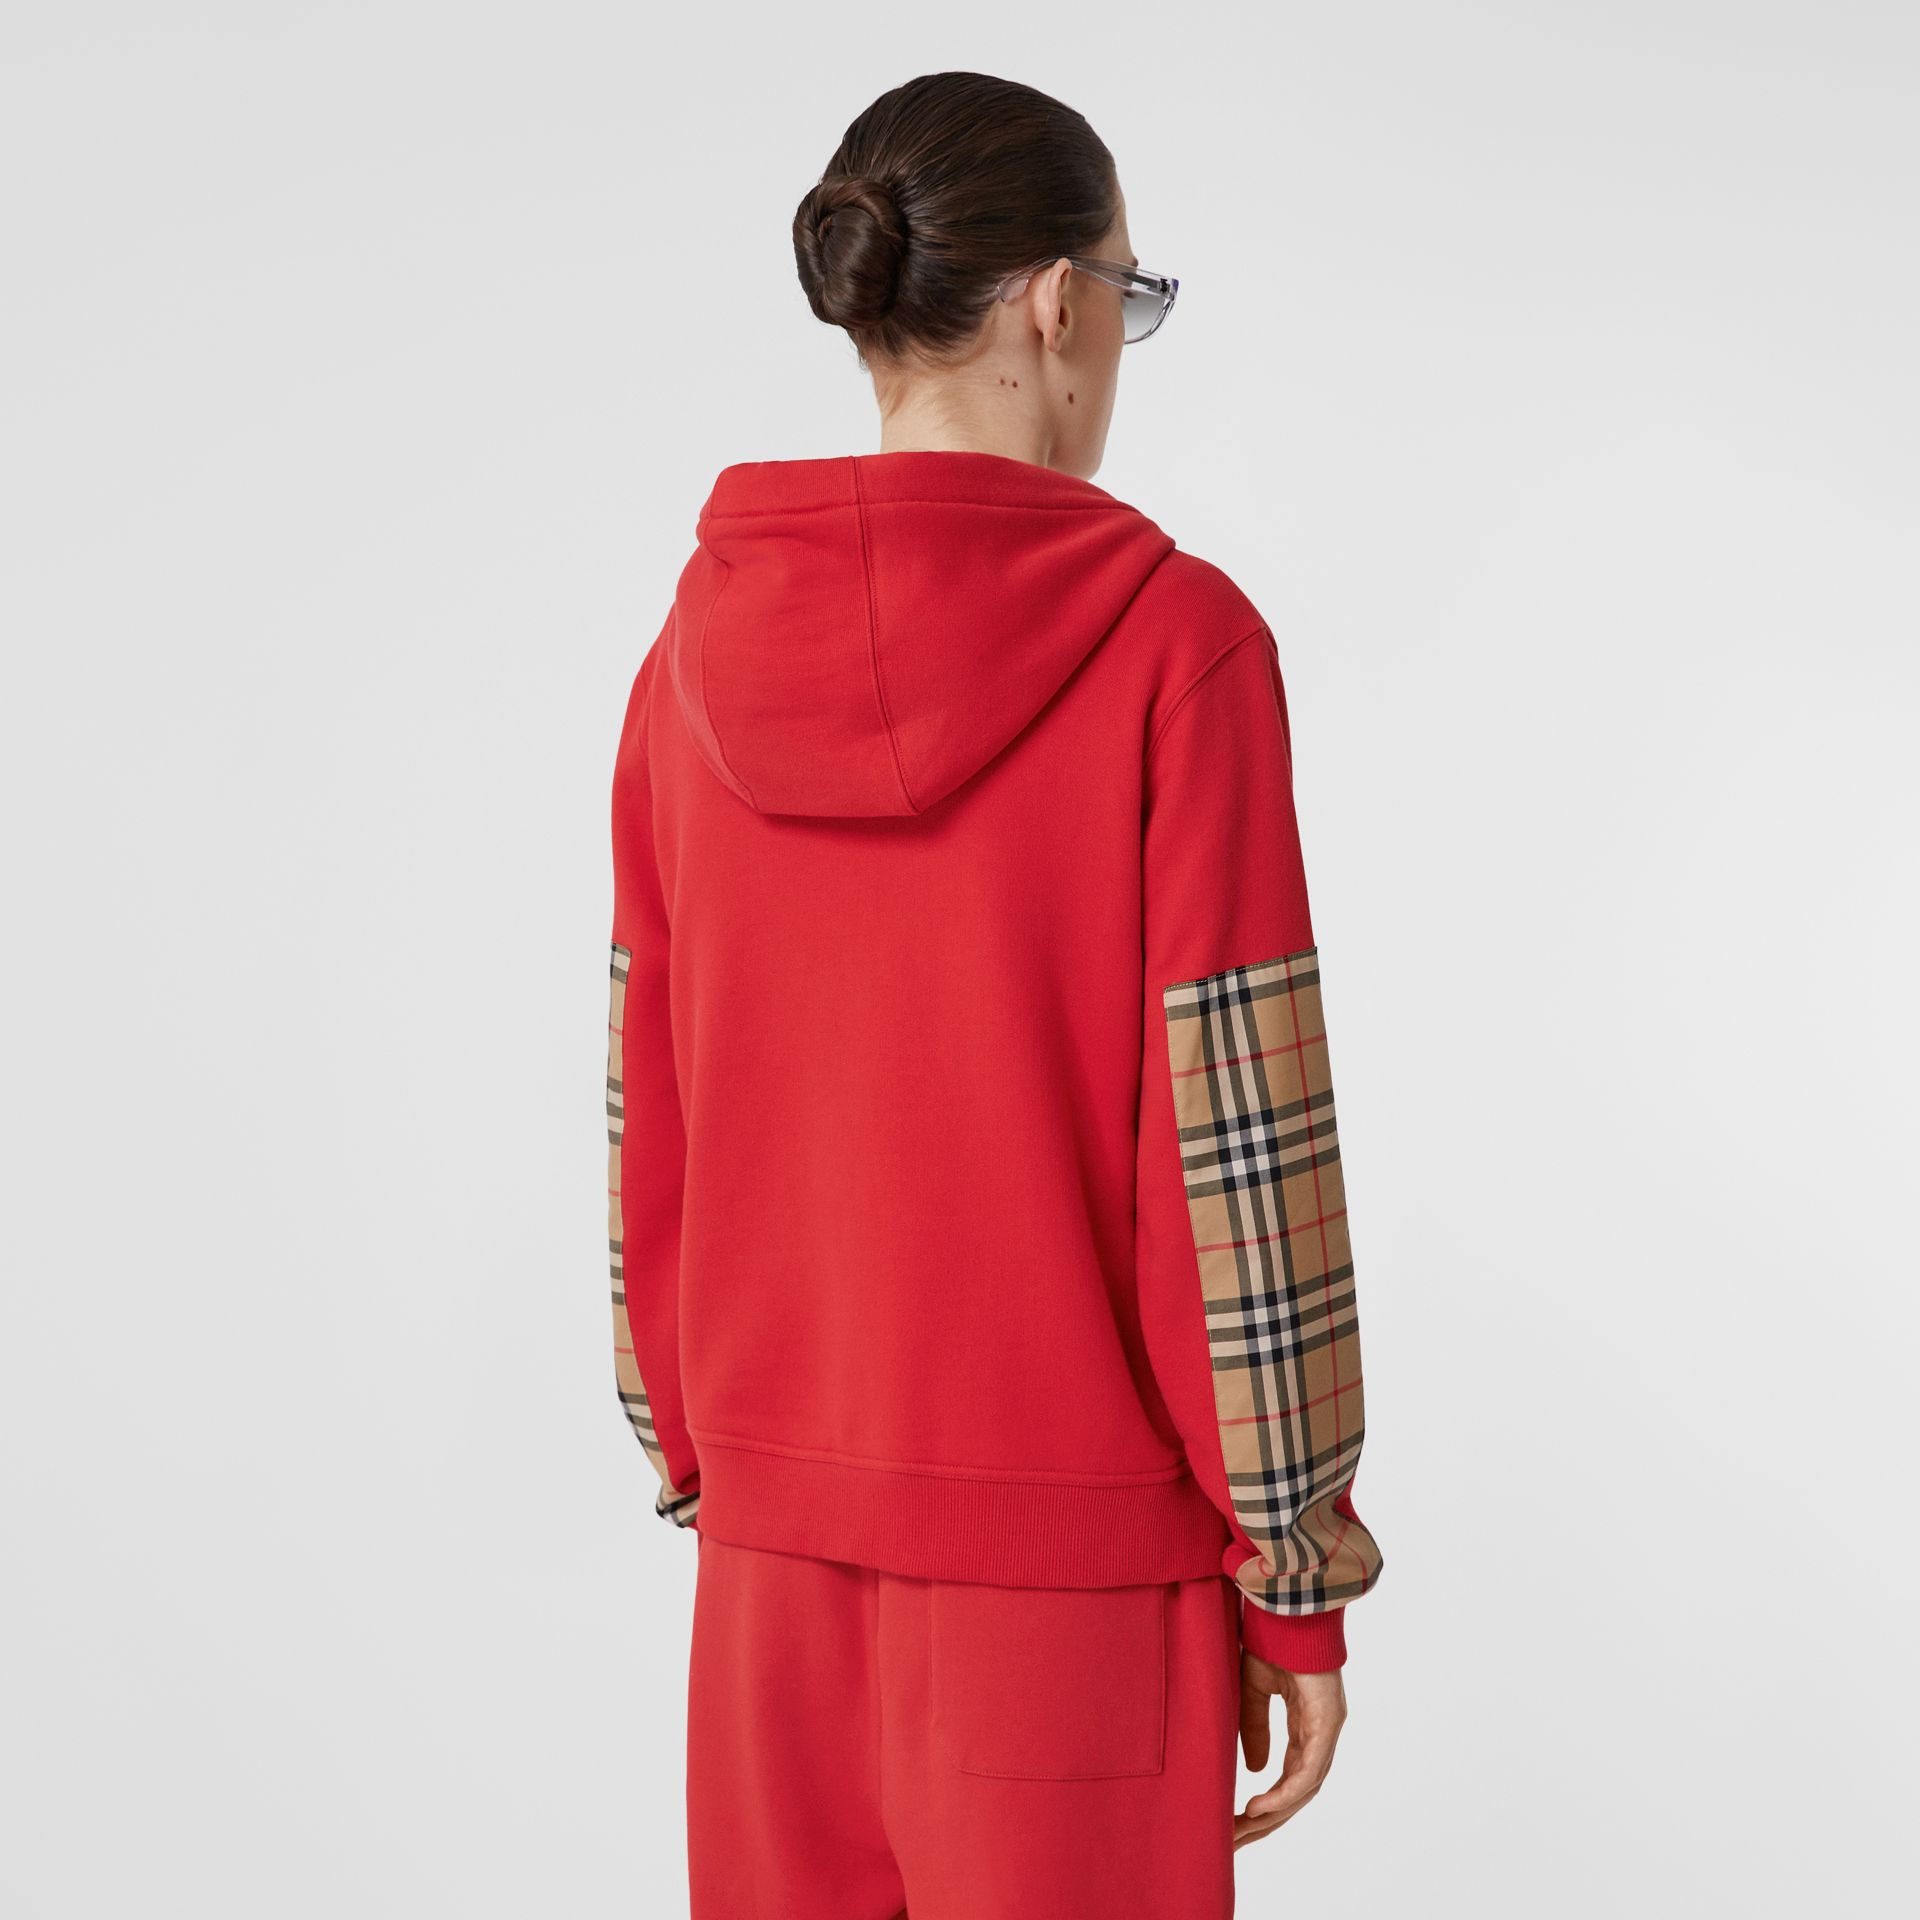 Vintage Check Panel Cotton Oversized Hooded Top in Bright Red - Women | Burberry Hong Kong S.A.R - gallery image 2